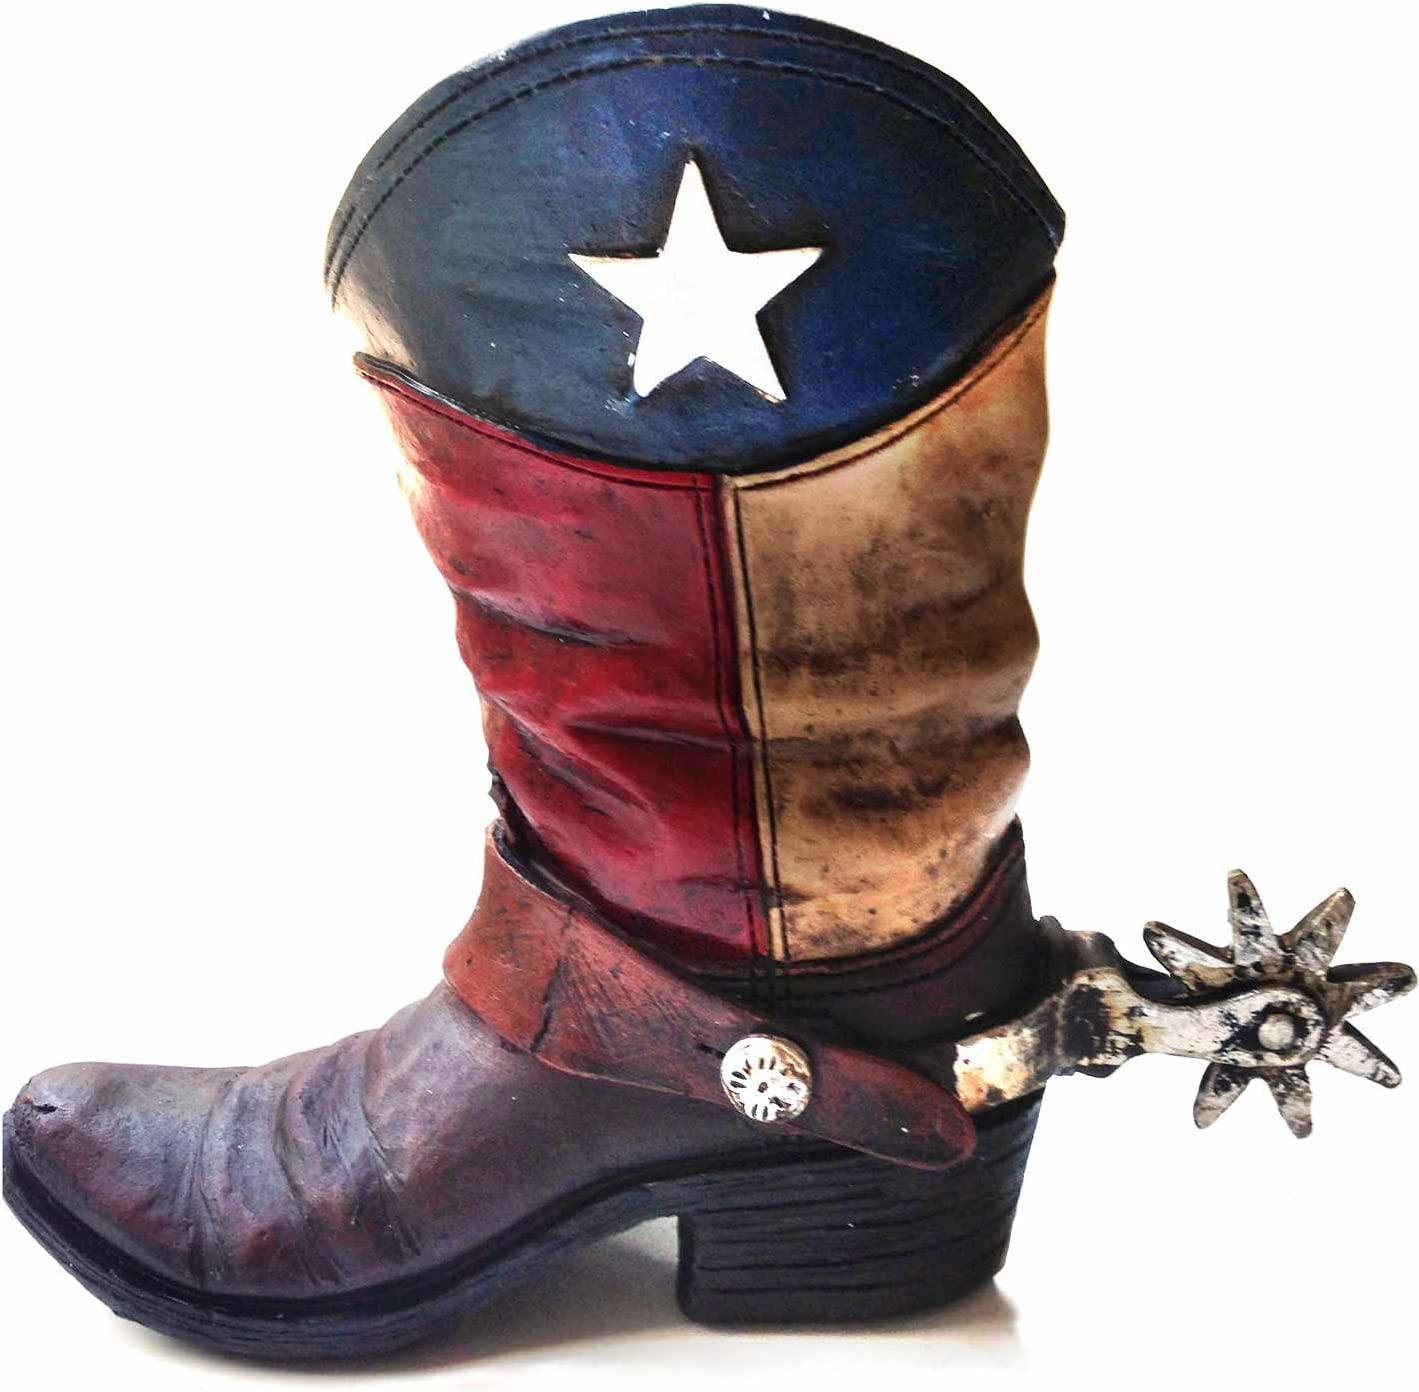 Texas Lone Star Cowboy Boot with Spur Piggy Bank for Western Decor